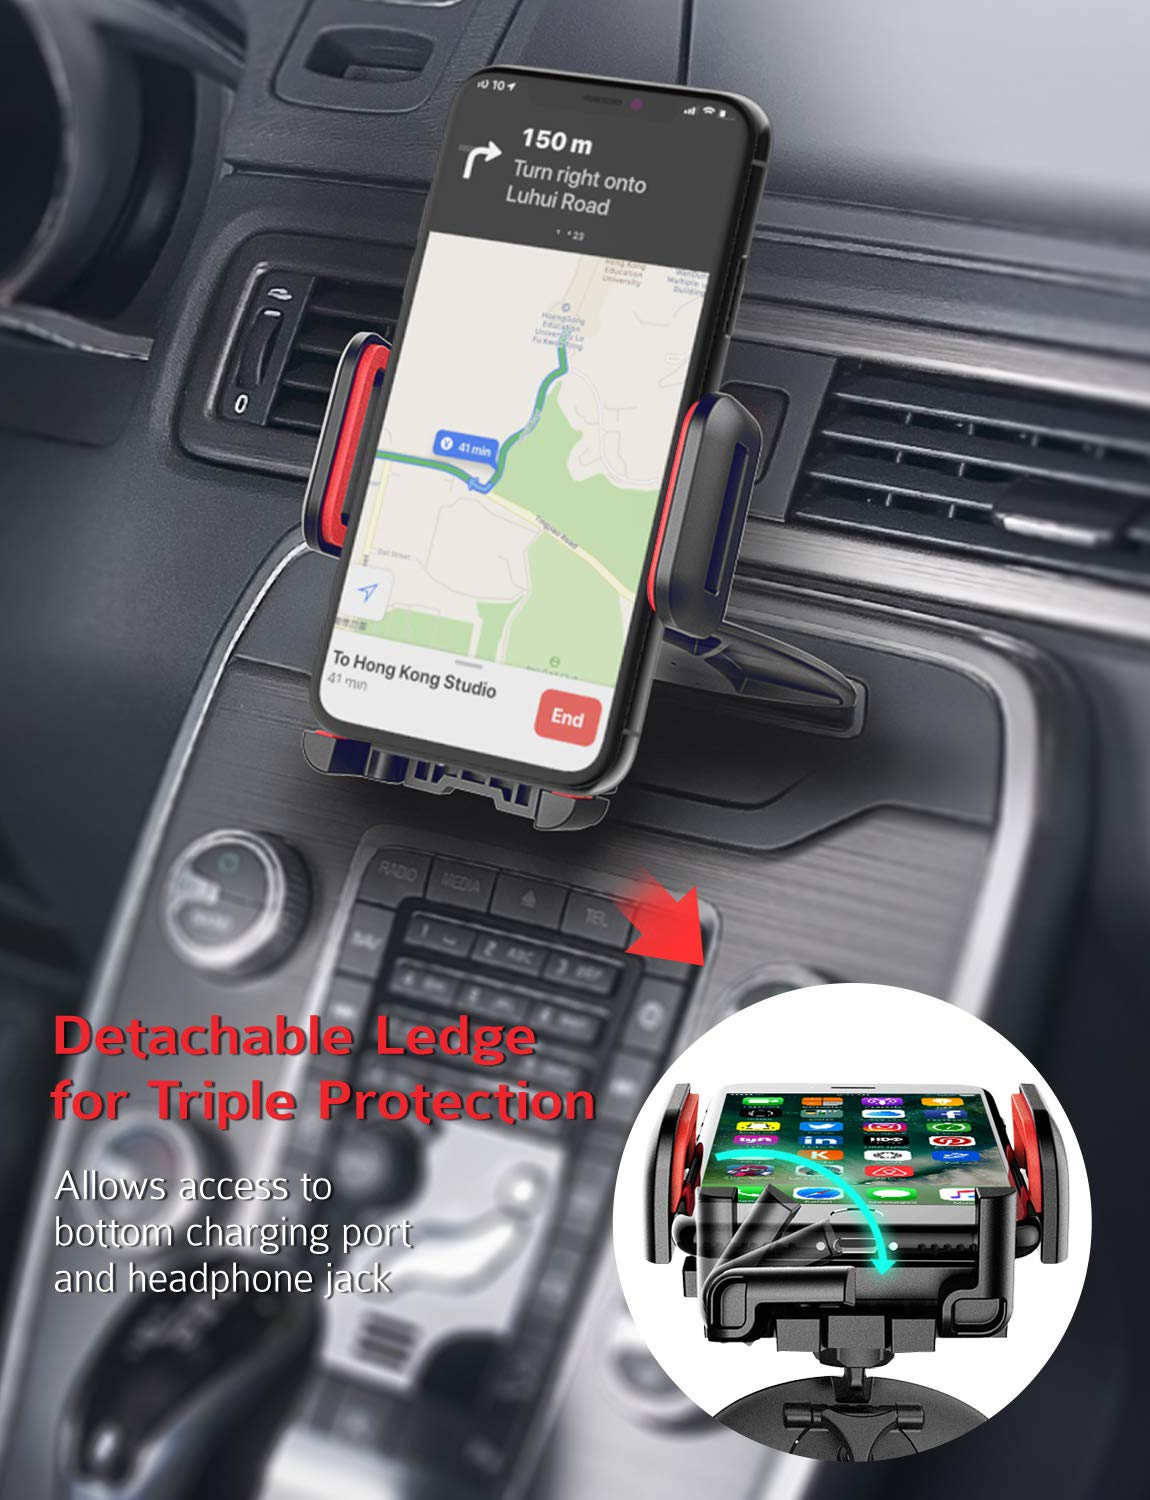 Mpow 051 Car Phone Mount, CD Slot Car Phone Holder, Car Mount with Three-Side Grips and One-Touch Design Compatible iPhone Xs MAX/XR/XS/X/8/8Plus, Galaxy S10/S10+/S10e/S9/S9+/N9/S8, Google, Huawei etc by Mpow (Image #4)